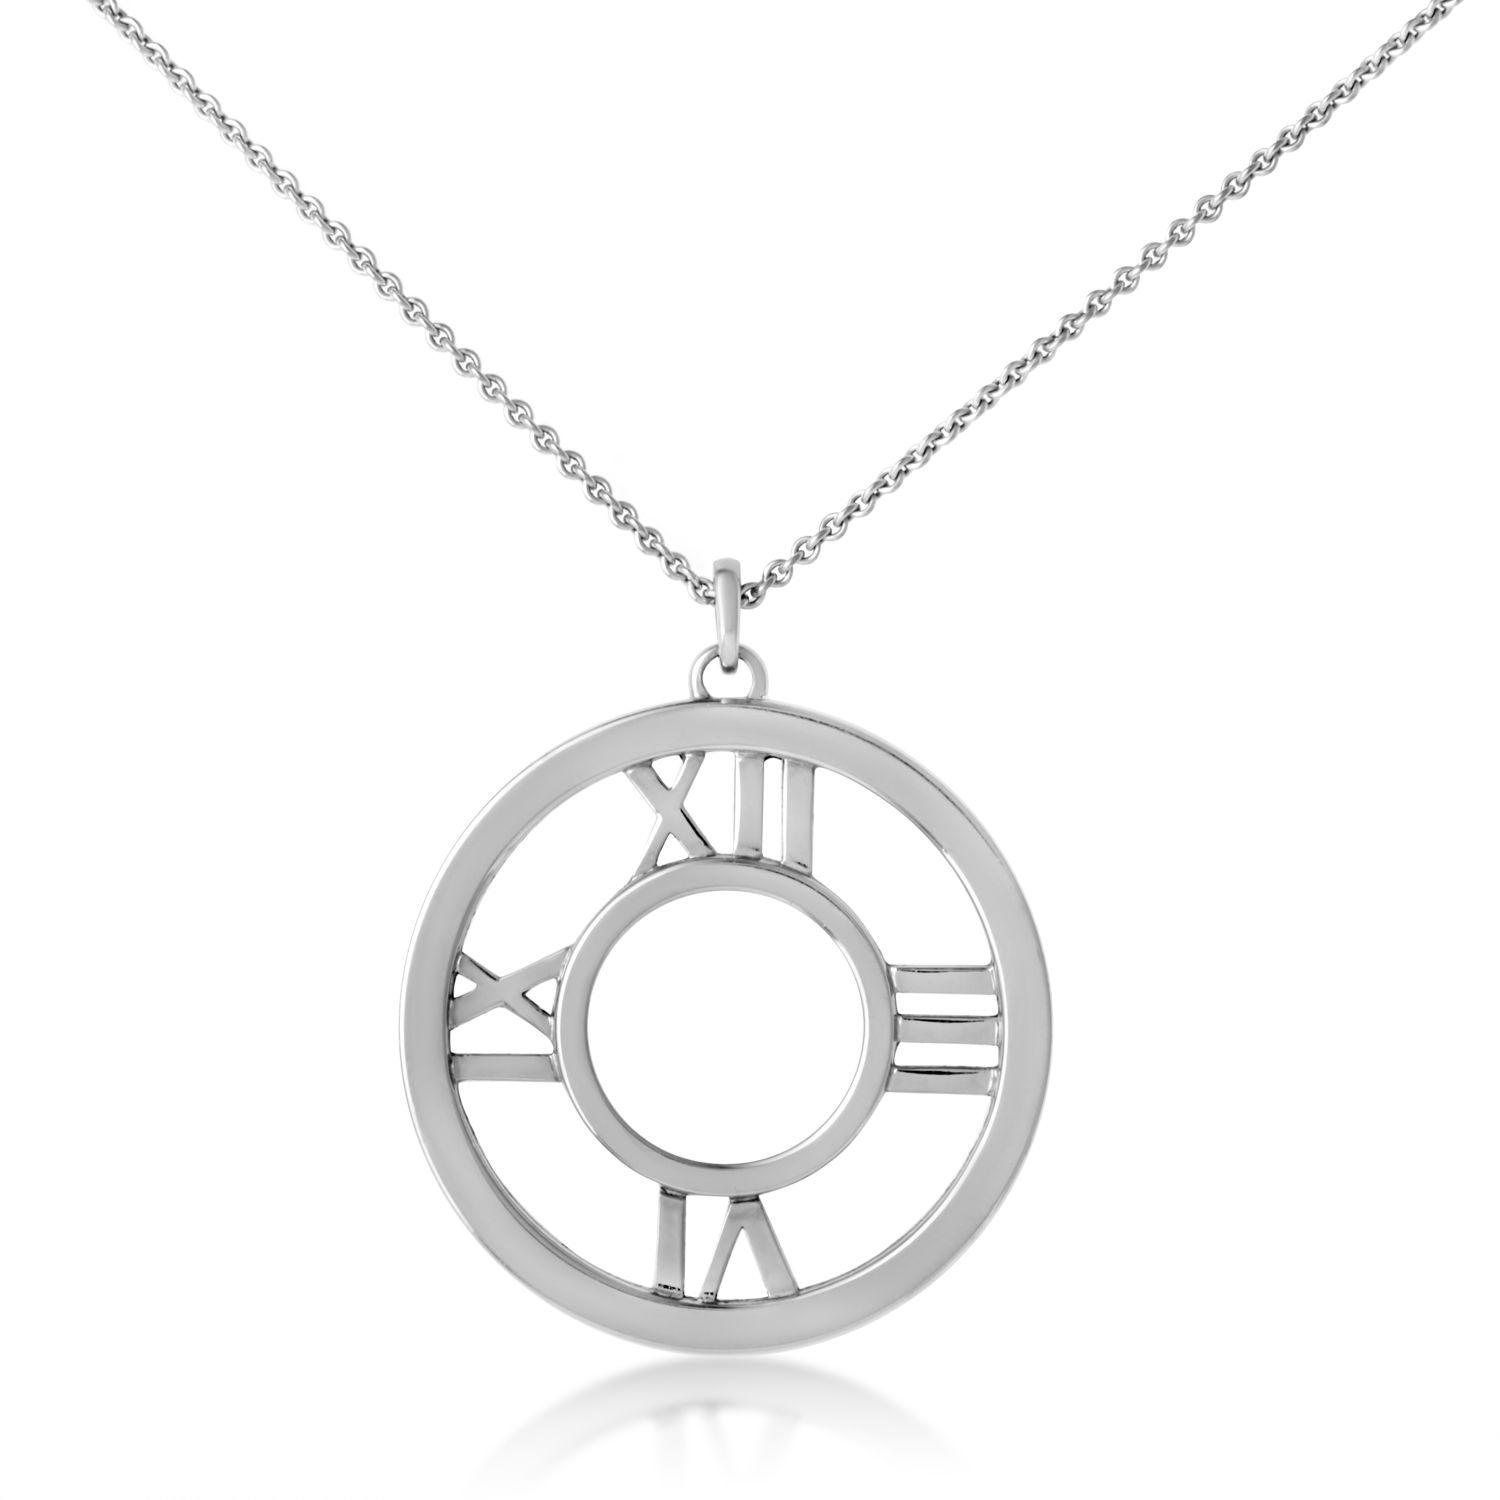 Tiffany & Co. Women's 18K White Gold Atlas Pendant Necklace